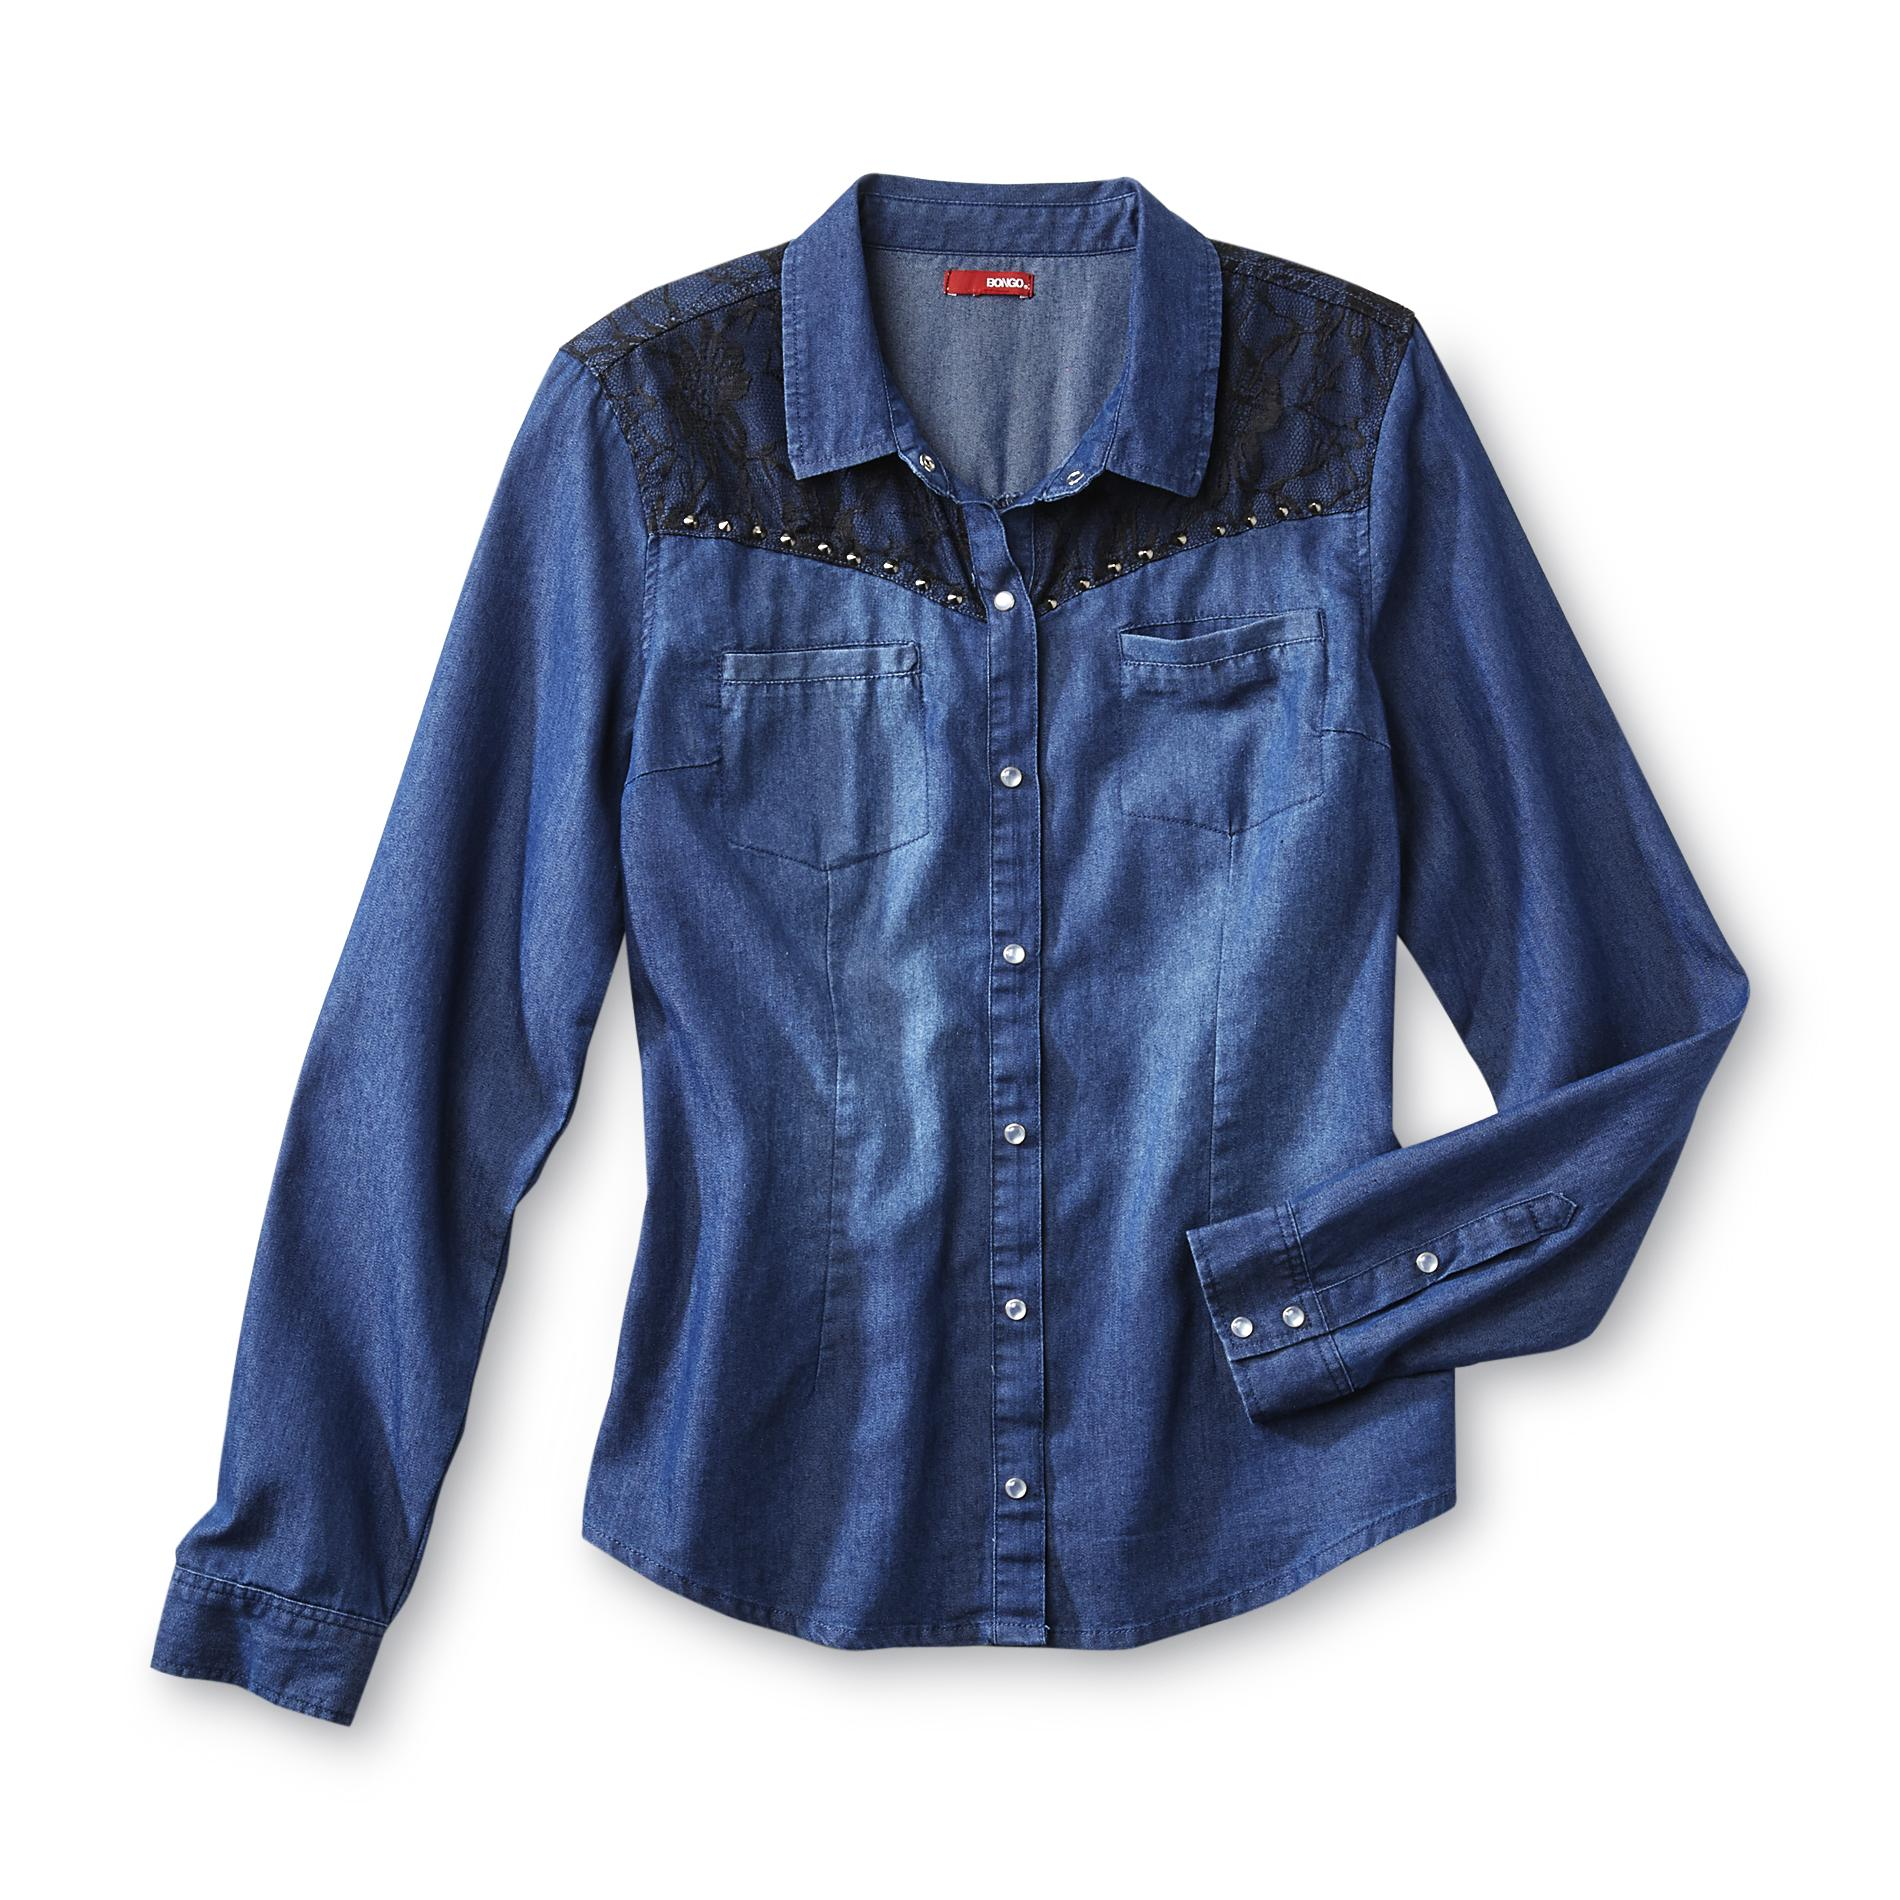 Junior's Denim Shirt - Lace